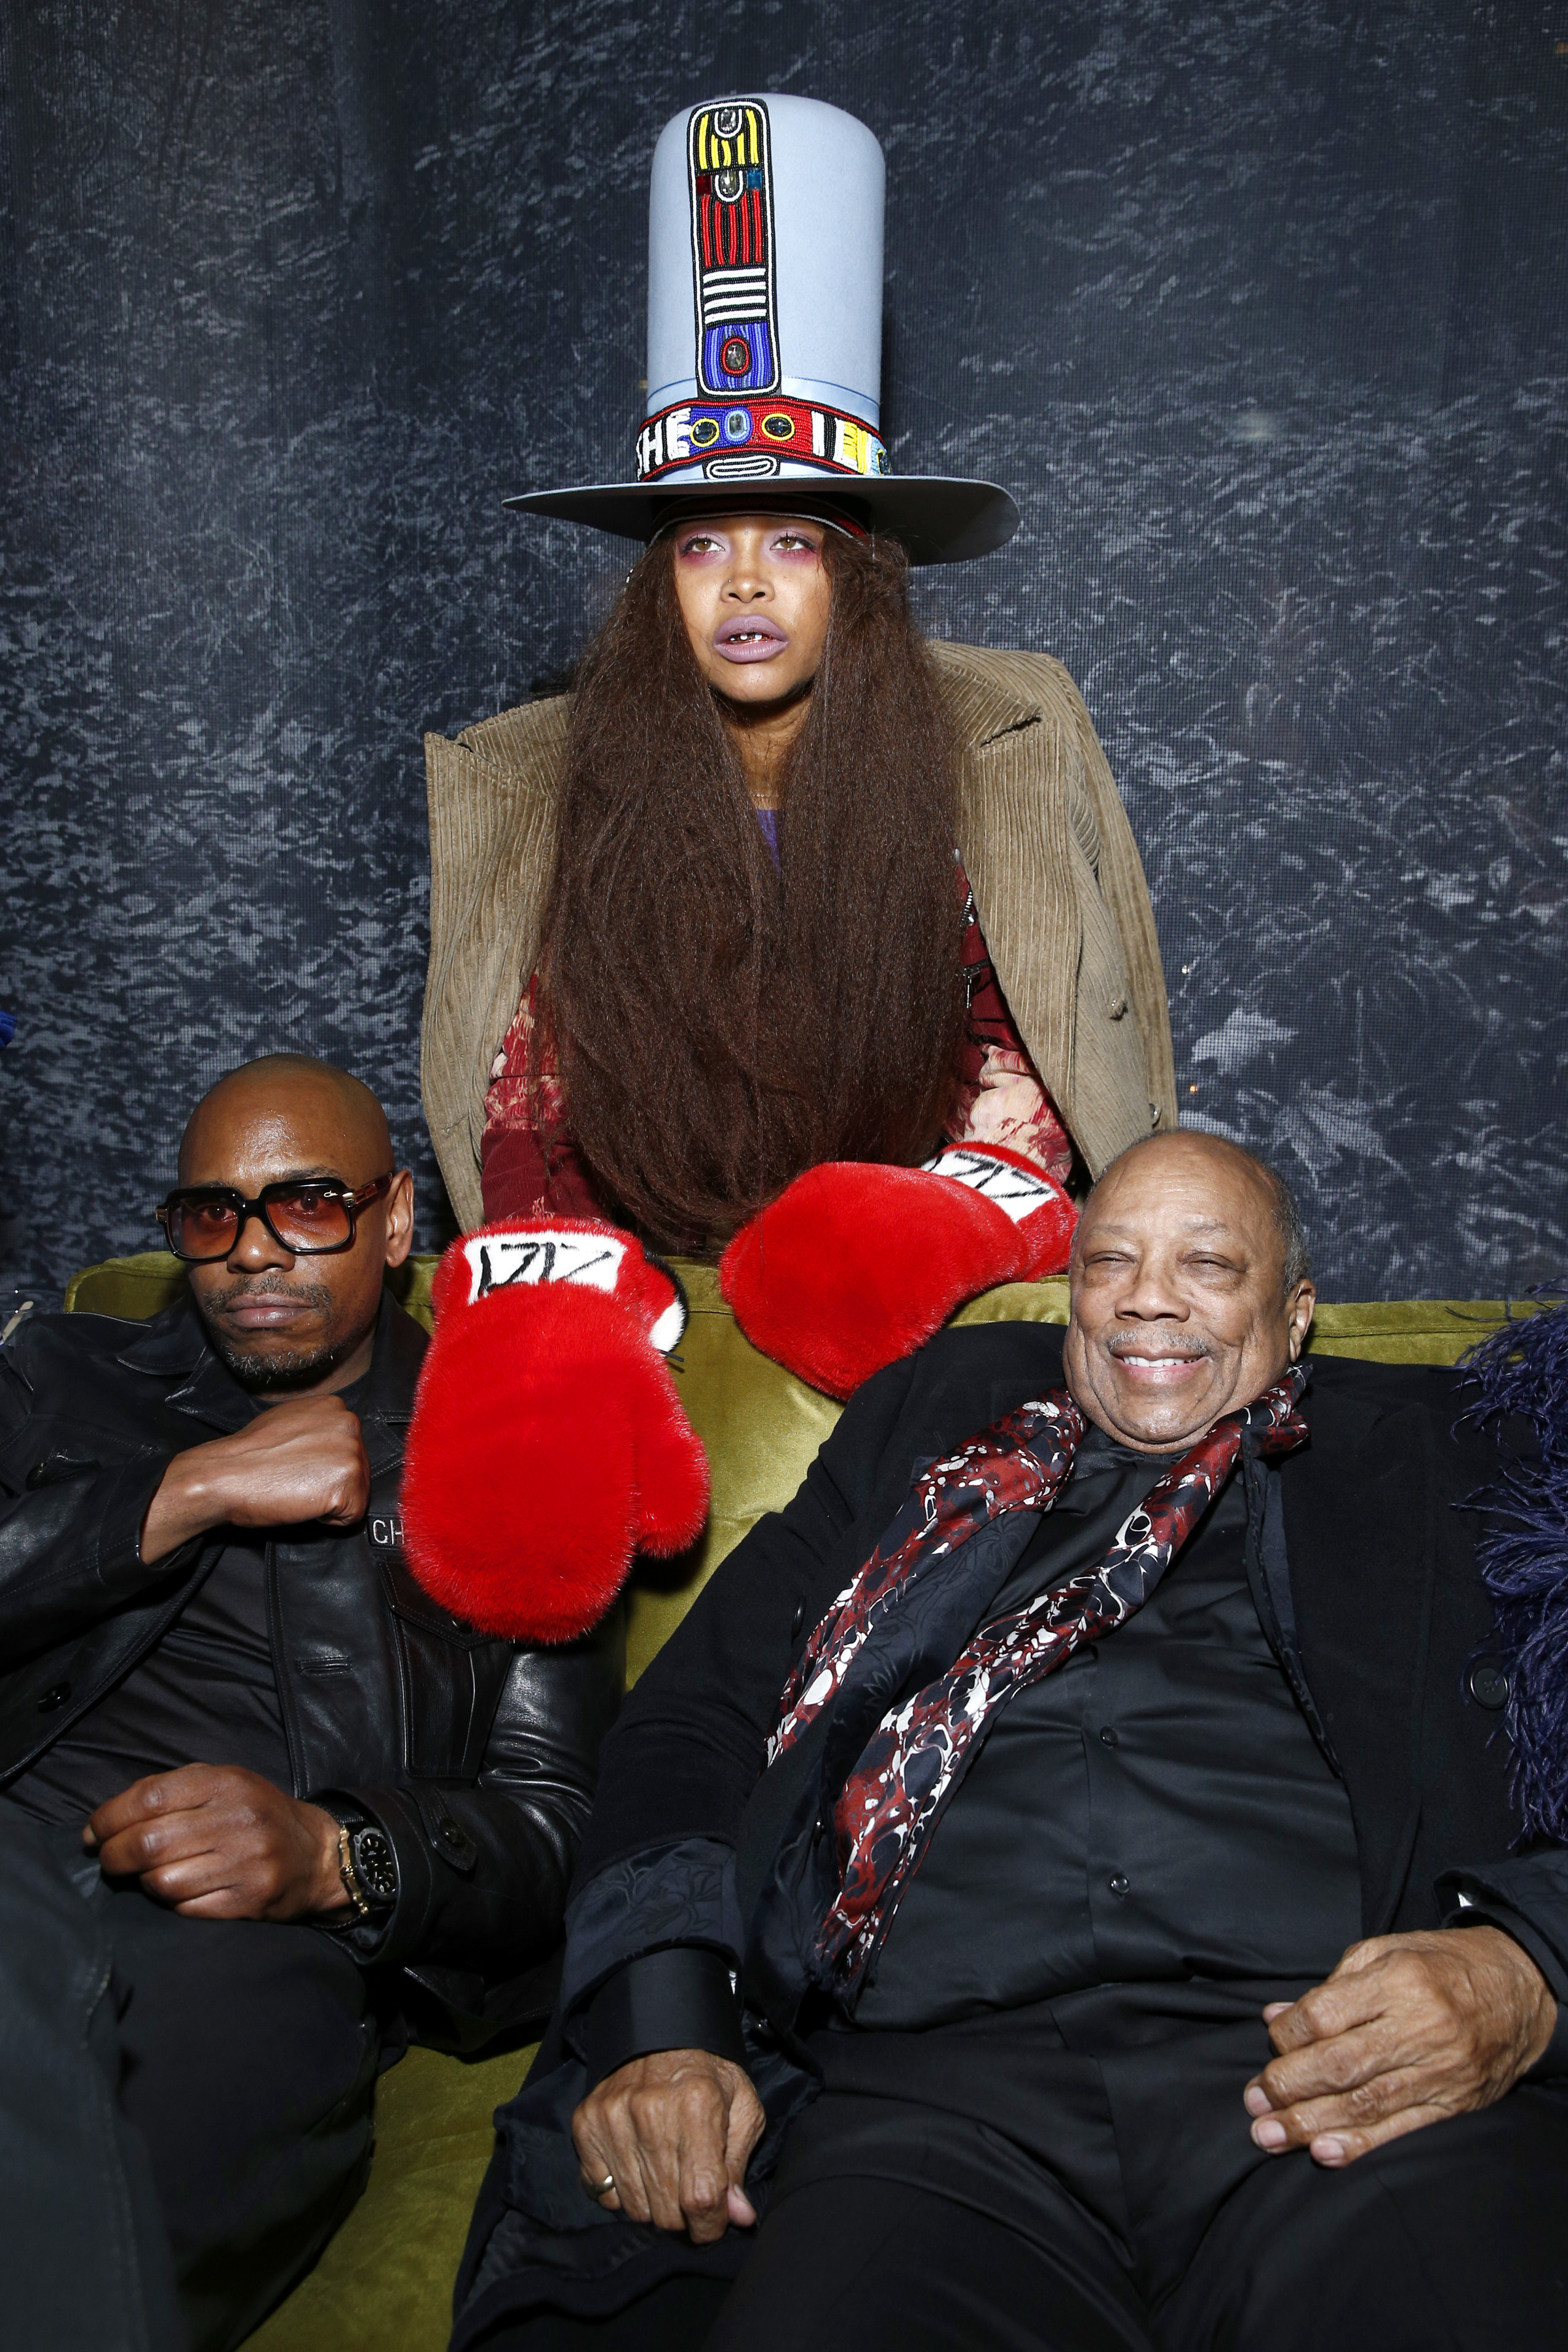 Dave Chappelle, Erykah Badu and Quincy Jones attend the Universal Music Group's 2018 After Party in NYC